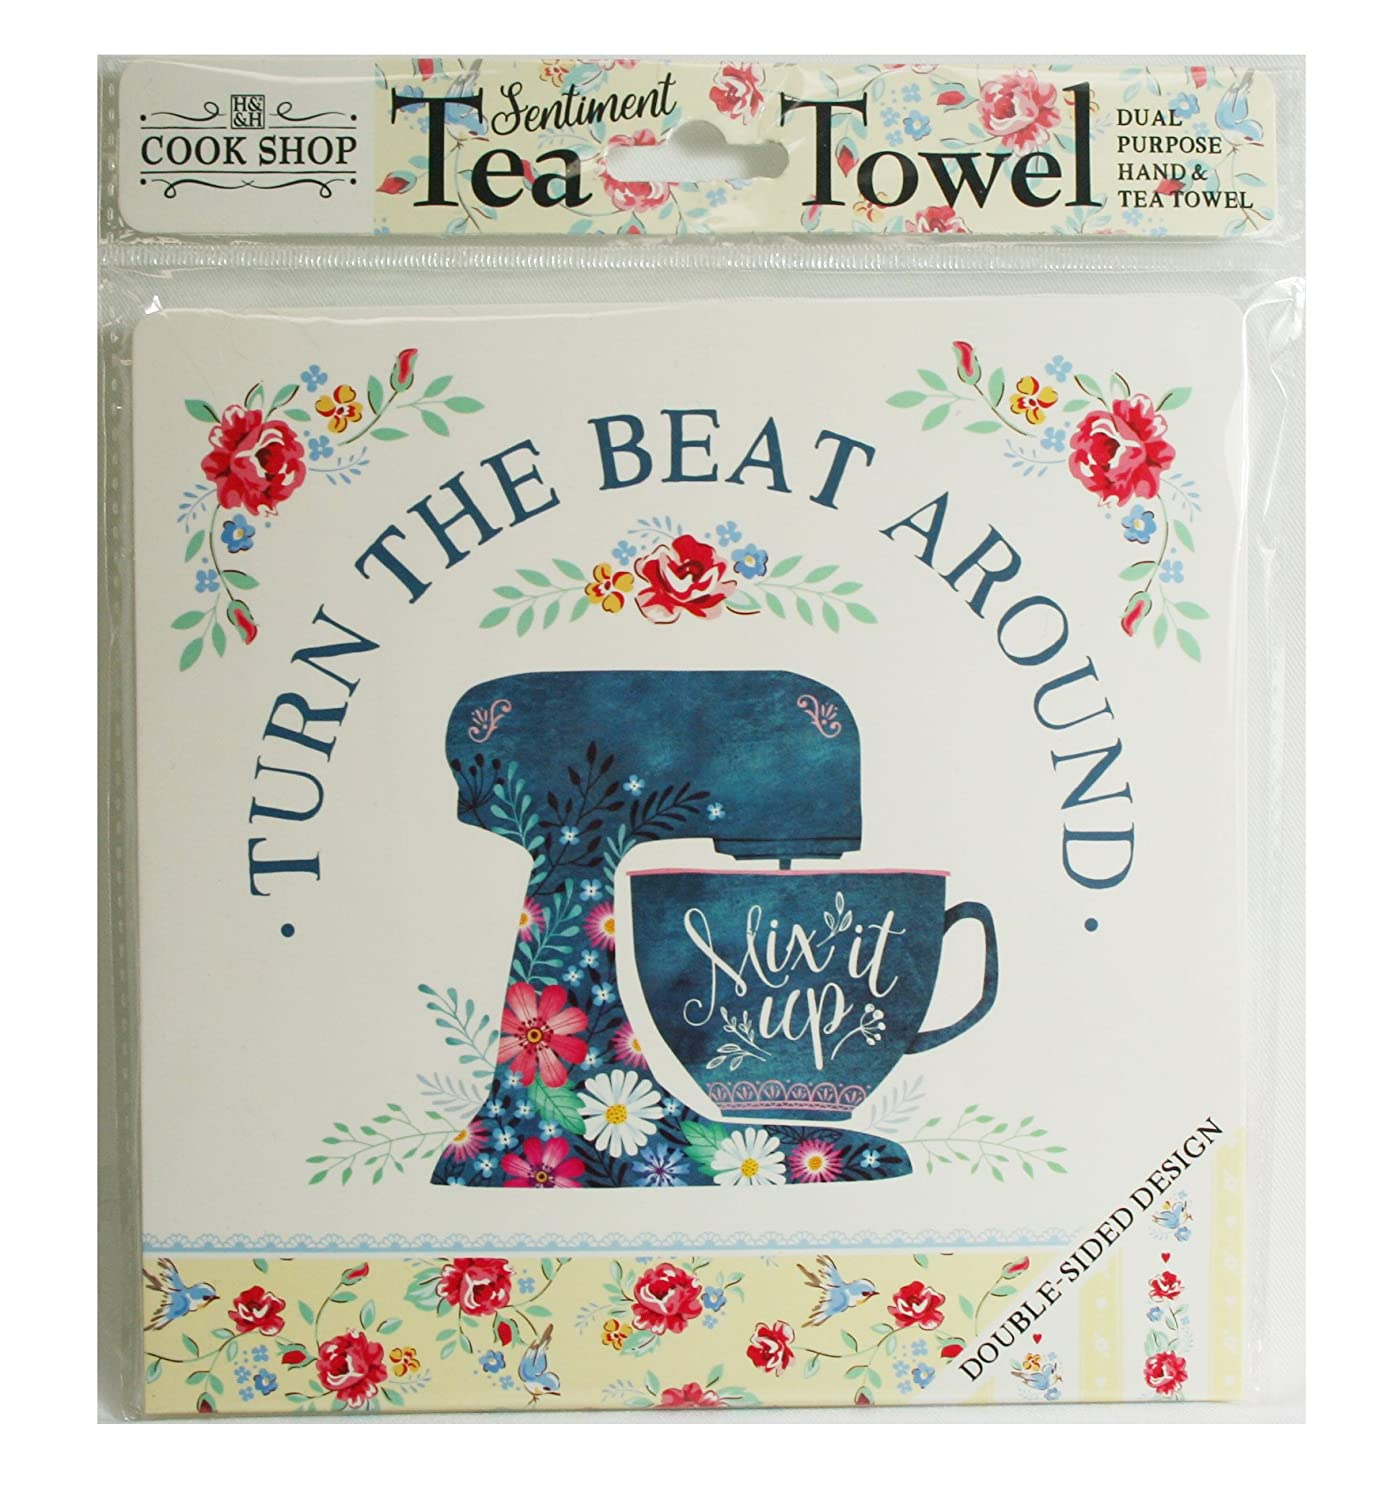 Cook Shop funny sentiment tea towel gift - Turn the beat around ...